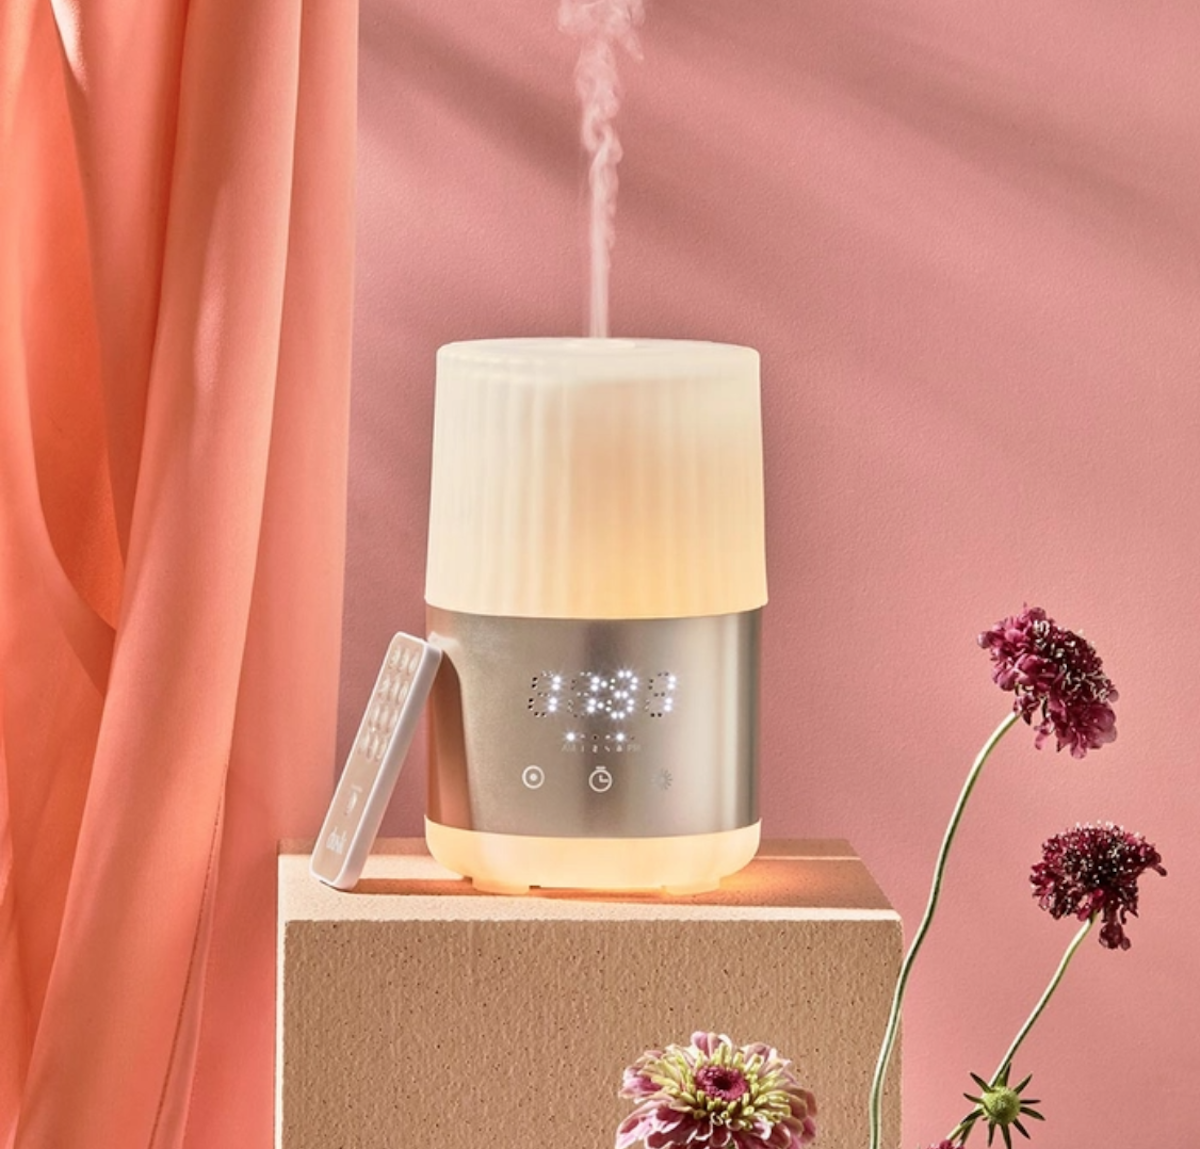 Essential Oil Diffuser Alarm Clock sitting on a bench